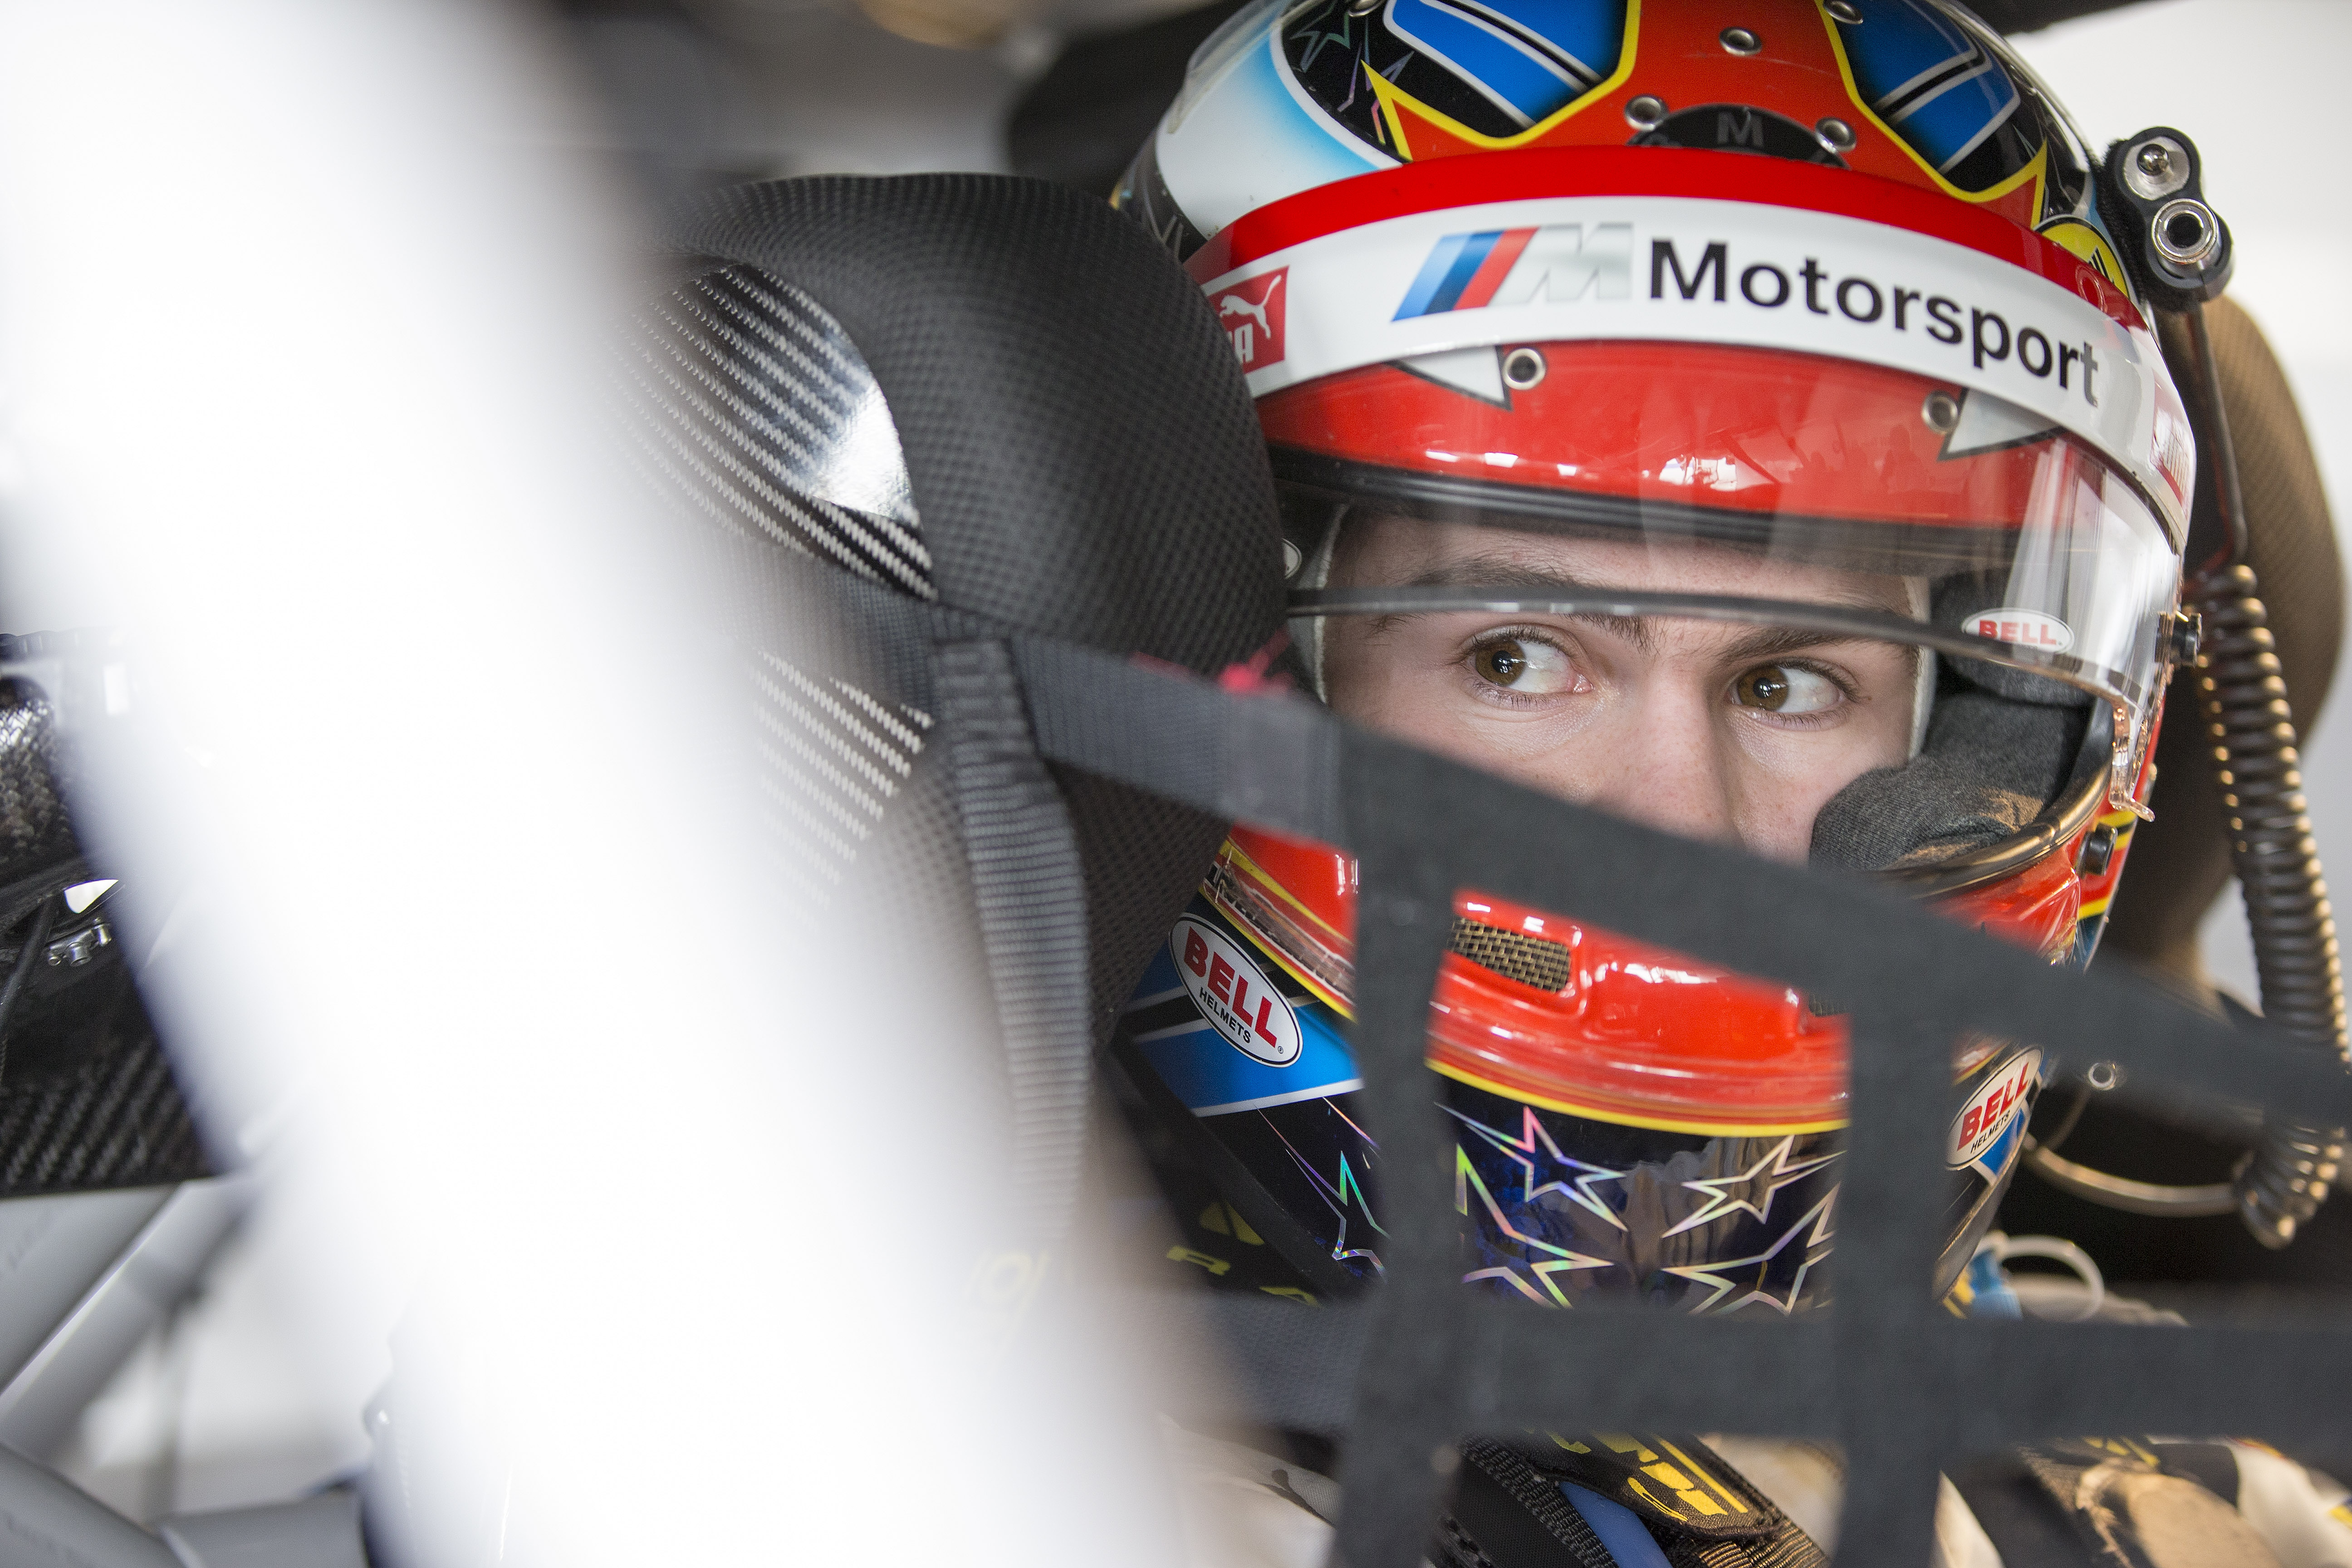 Colton Herta's BMW appointment